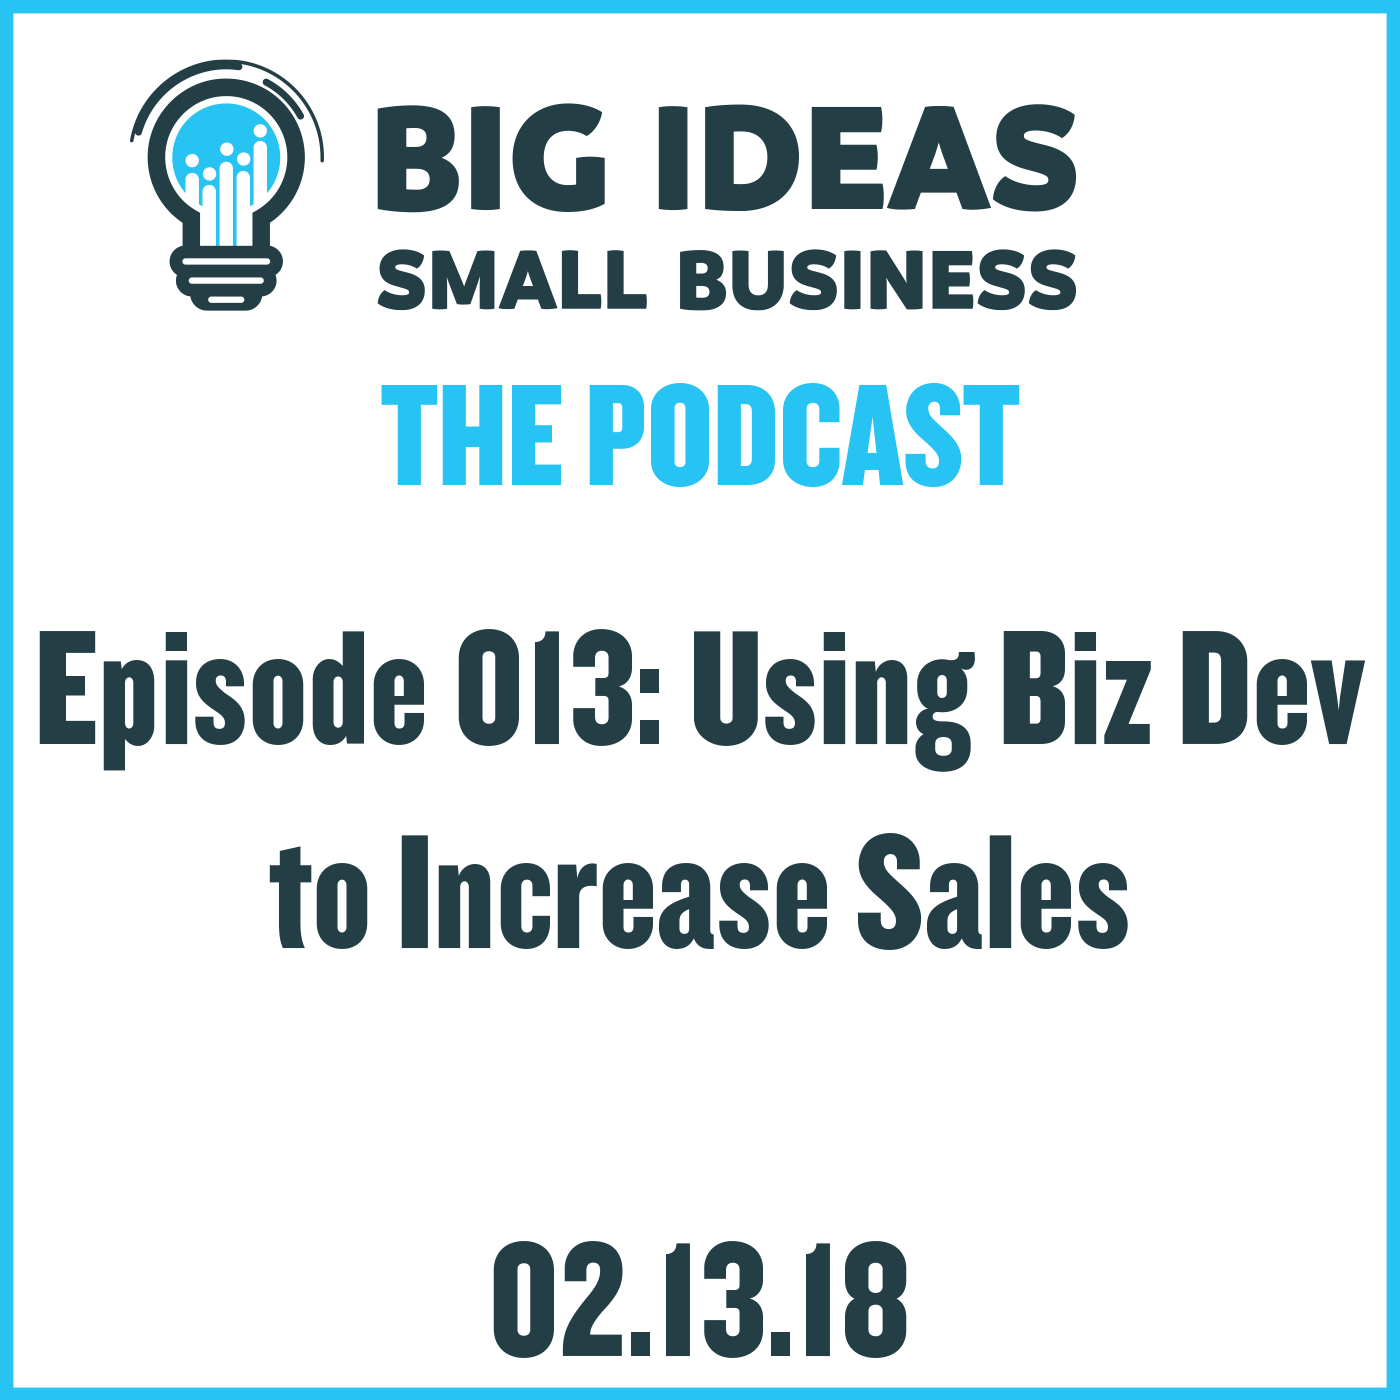 Using Biz Dev to Increase Sales – Big Ideas Small Business Podcast